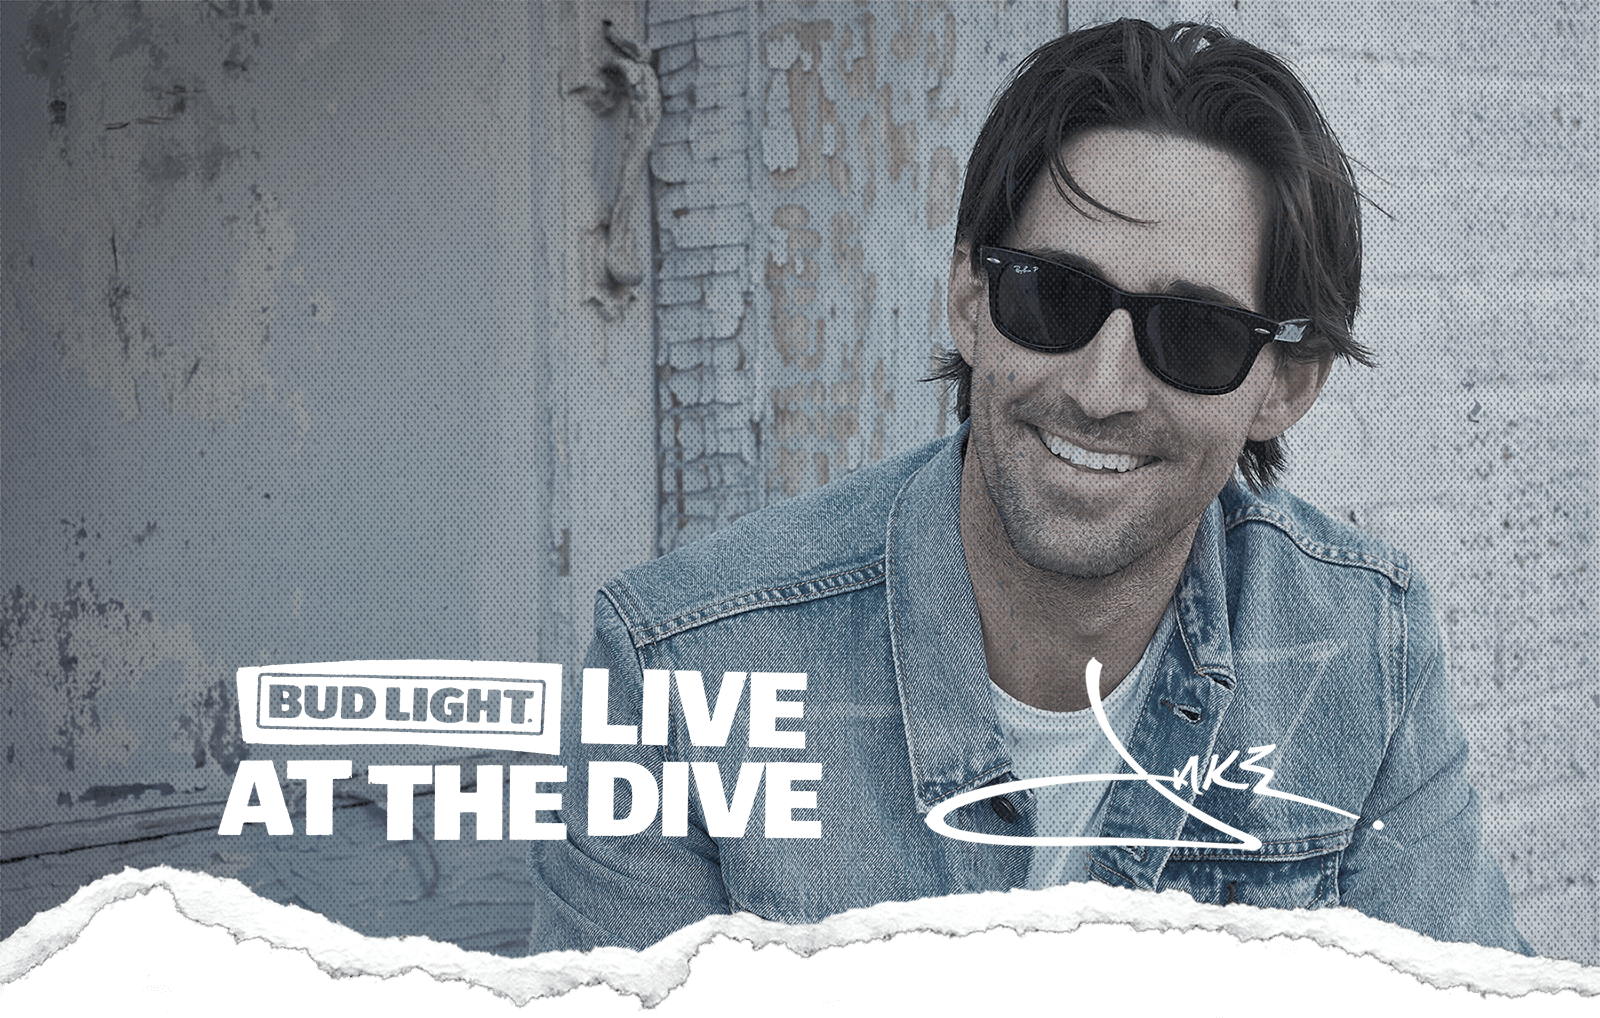 JAKE OWEN TEAMS UP WITH BUD LIGHT FOR LIVE AT THE DIVE